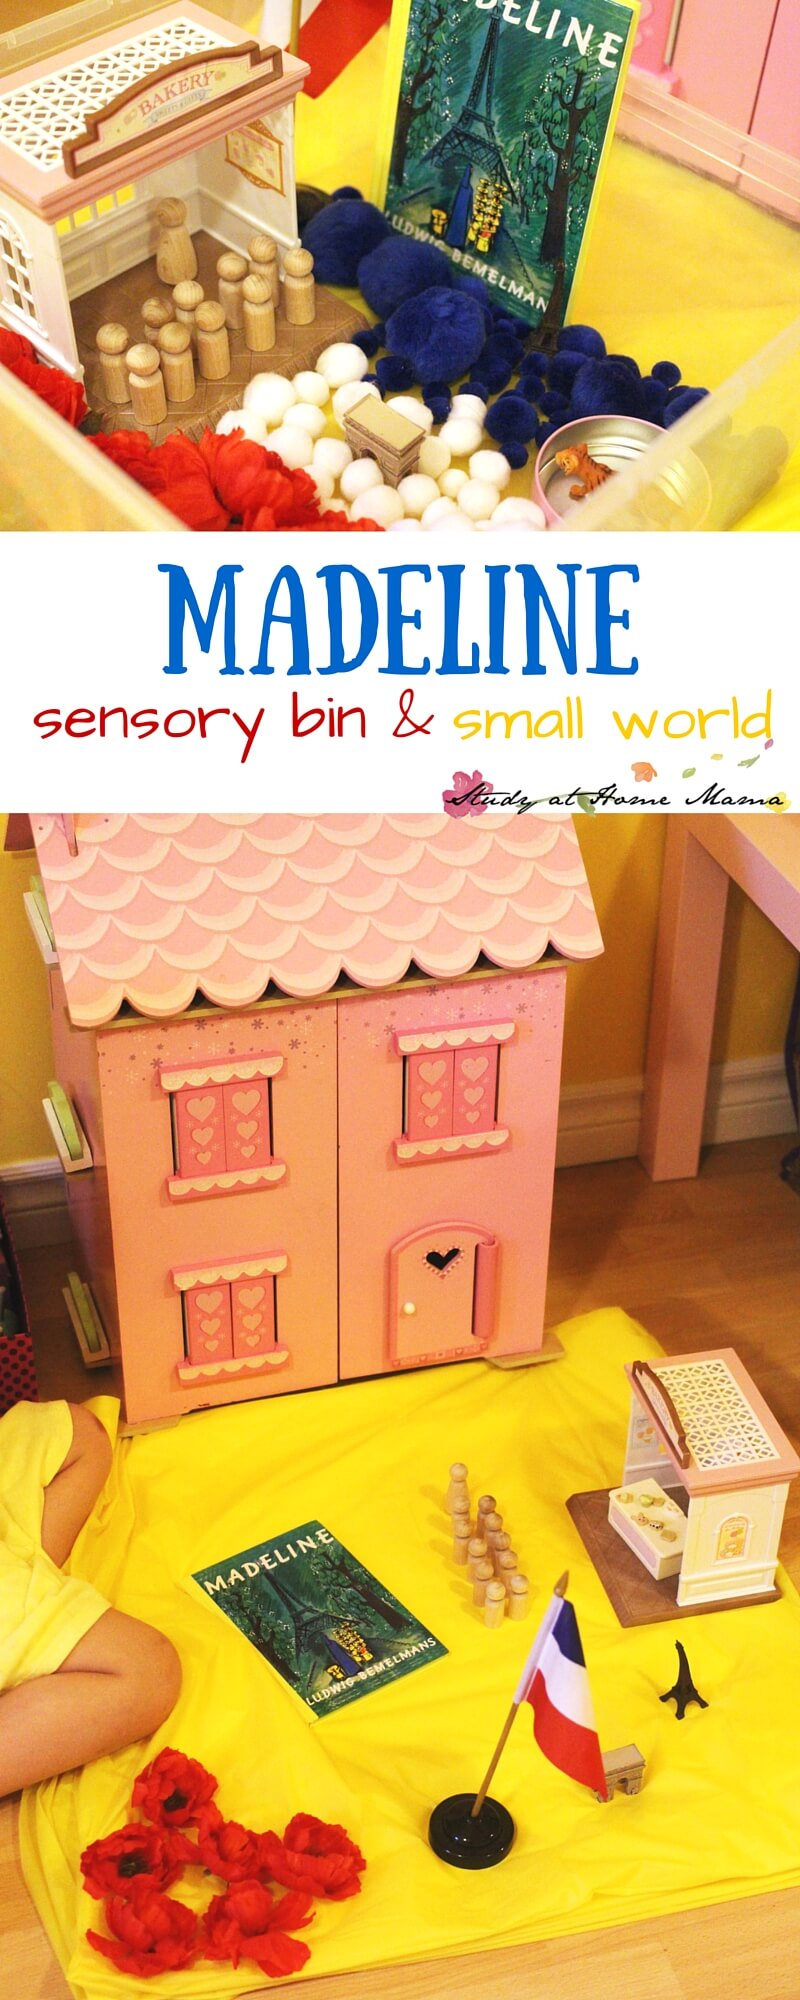 Madeline sensory bin and small world set-up. Read Madeline to your child as they engage in either of these fun sensory activities for kids, learning about French culture and incorporating a bit of math into the fun. Perfect for a Madeline unit study